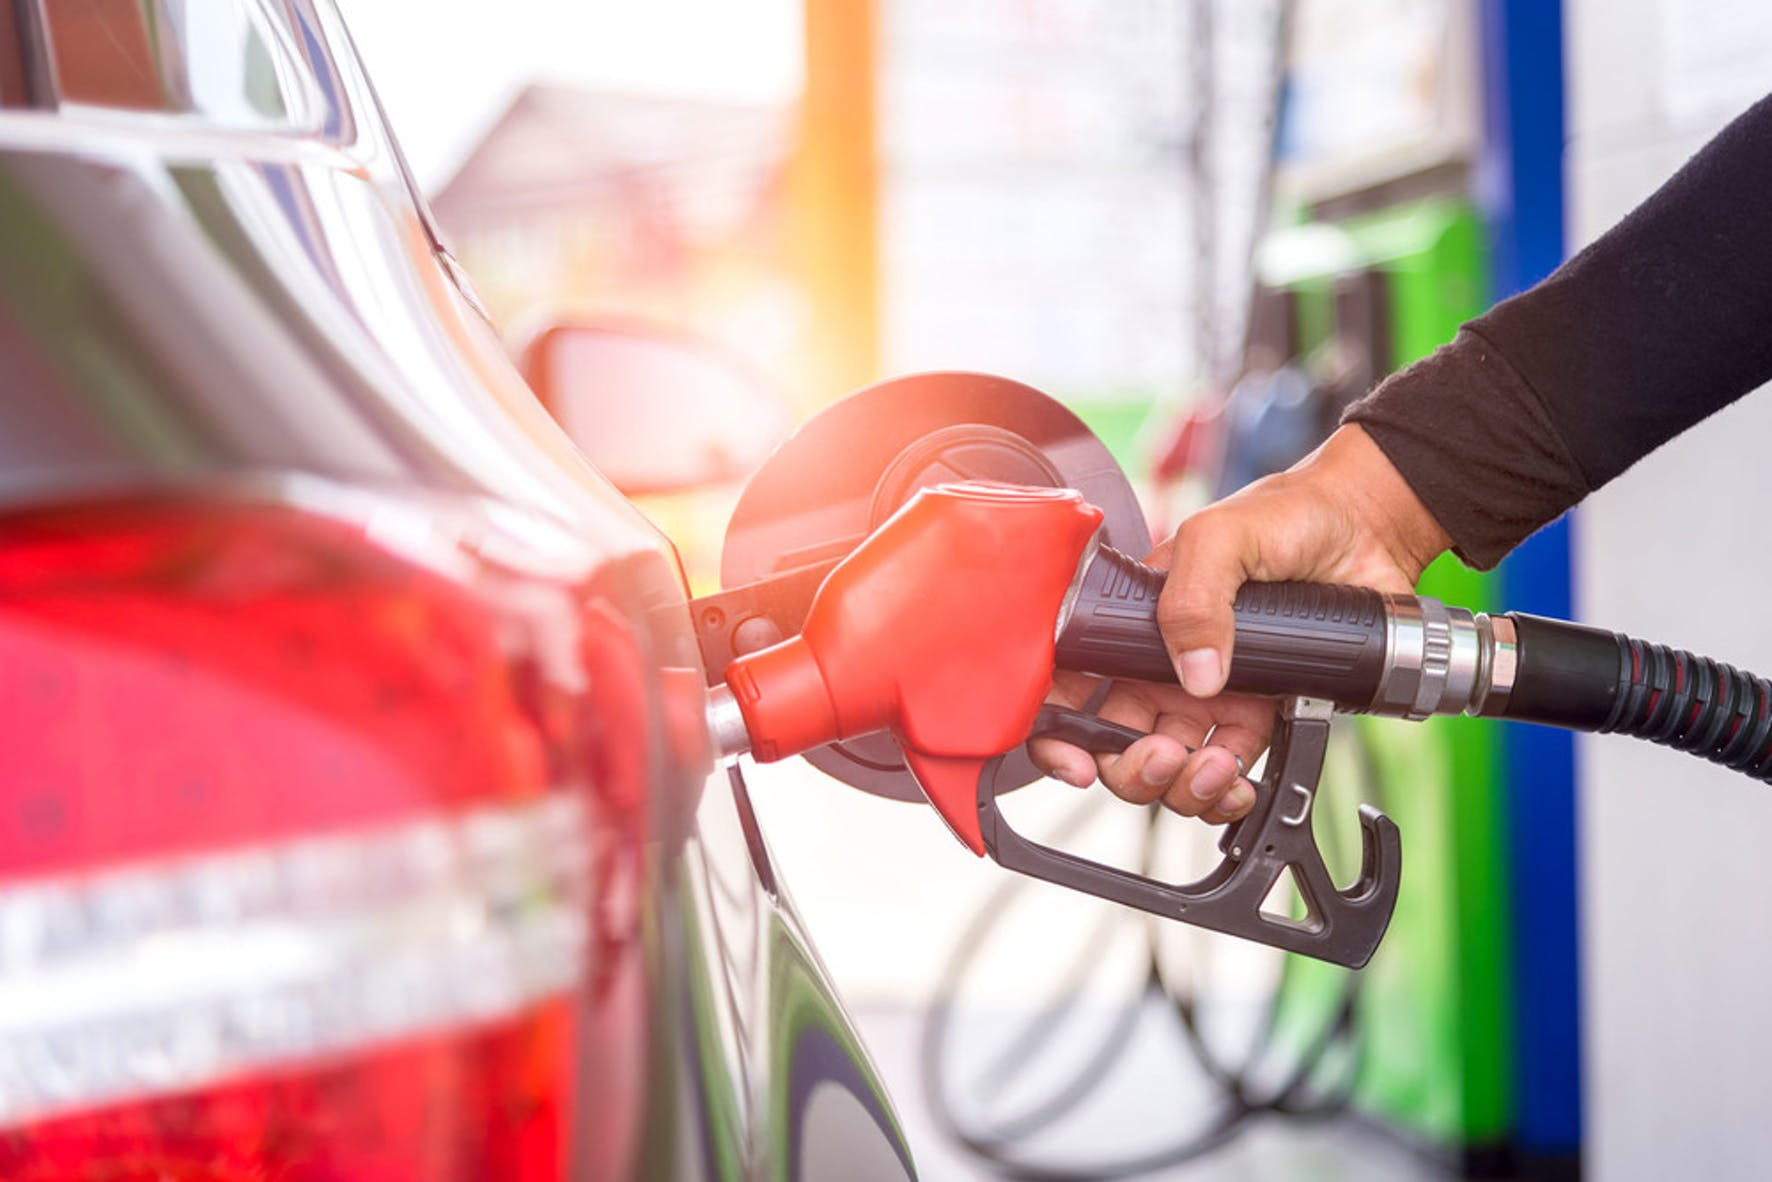 How to find cheaper gas prices